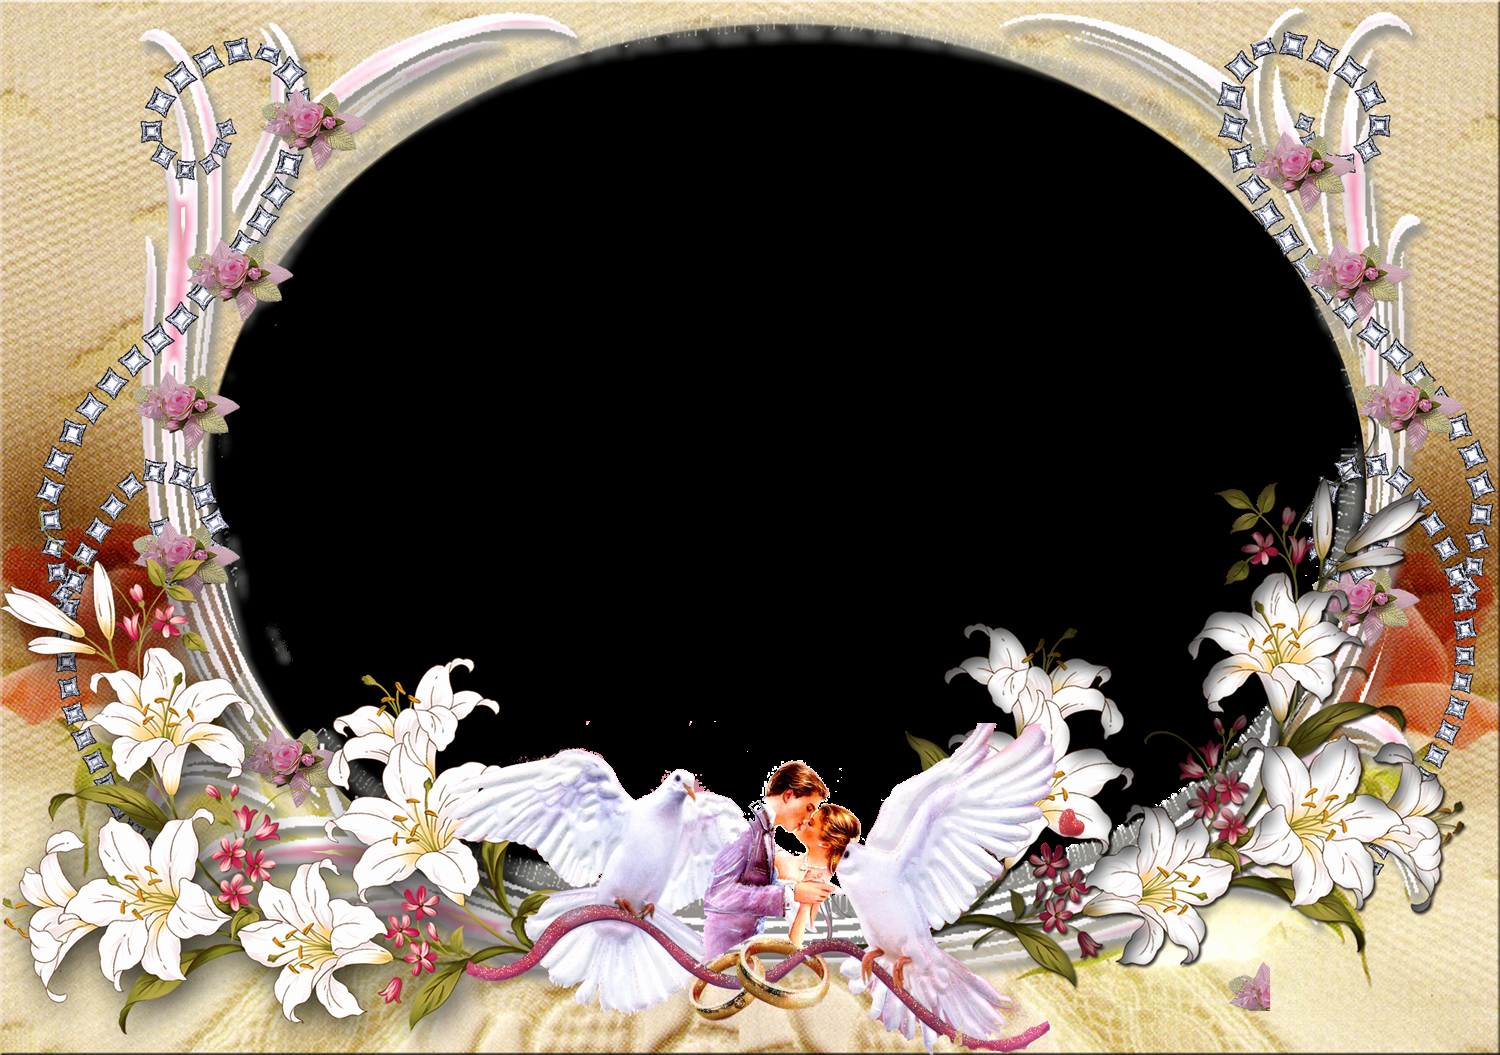 Photoshop Picture Frame Template Lovely Wallpaper Template Psd Free Download Wallpaper